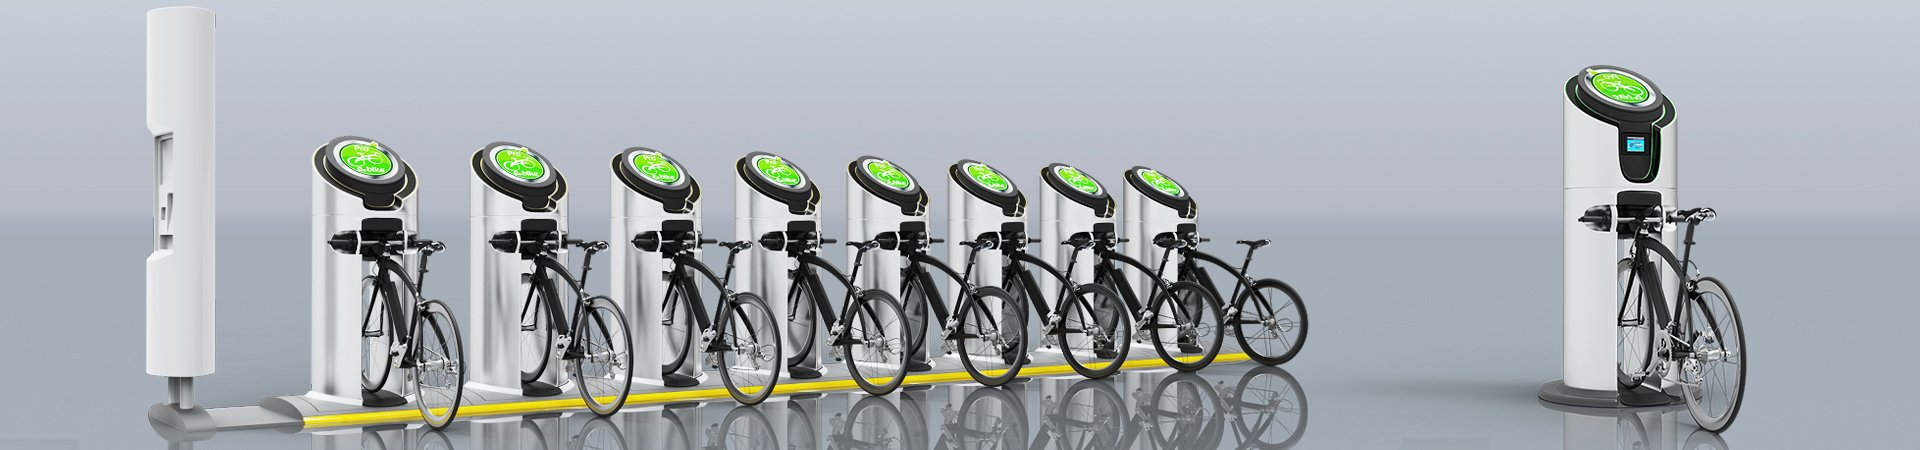 Bike Charging Station Product Design by Kohlex